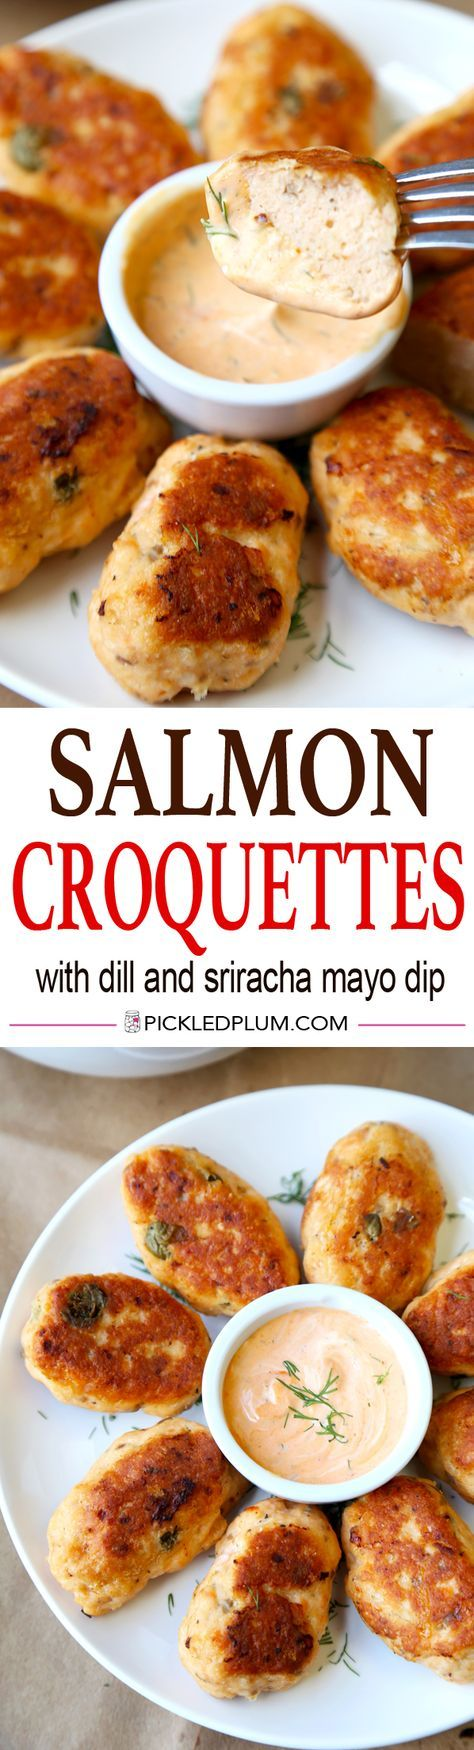 Healthy Salmon Croquettes Recipe with Tangy Dill and Sriracha Dipping Sauce. Light, Tasty and only 20 minutes to make! Easy, Healthy, Seafood, Recipe | pickledplum.com